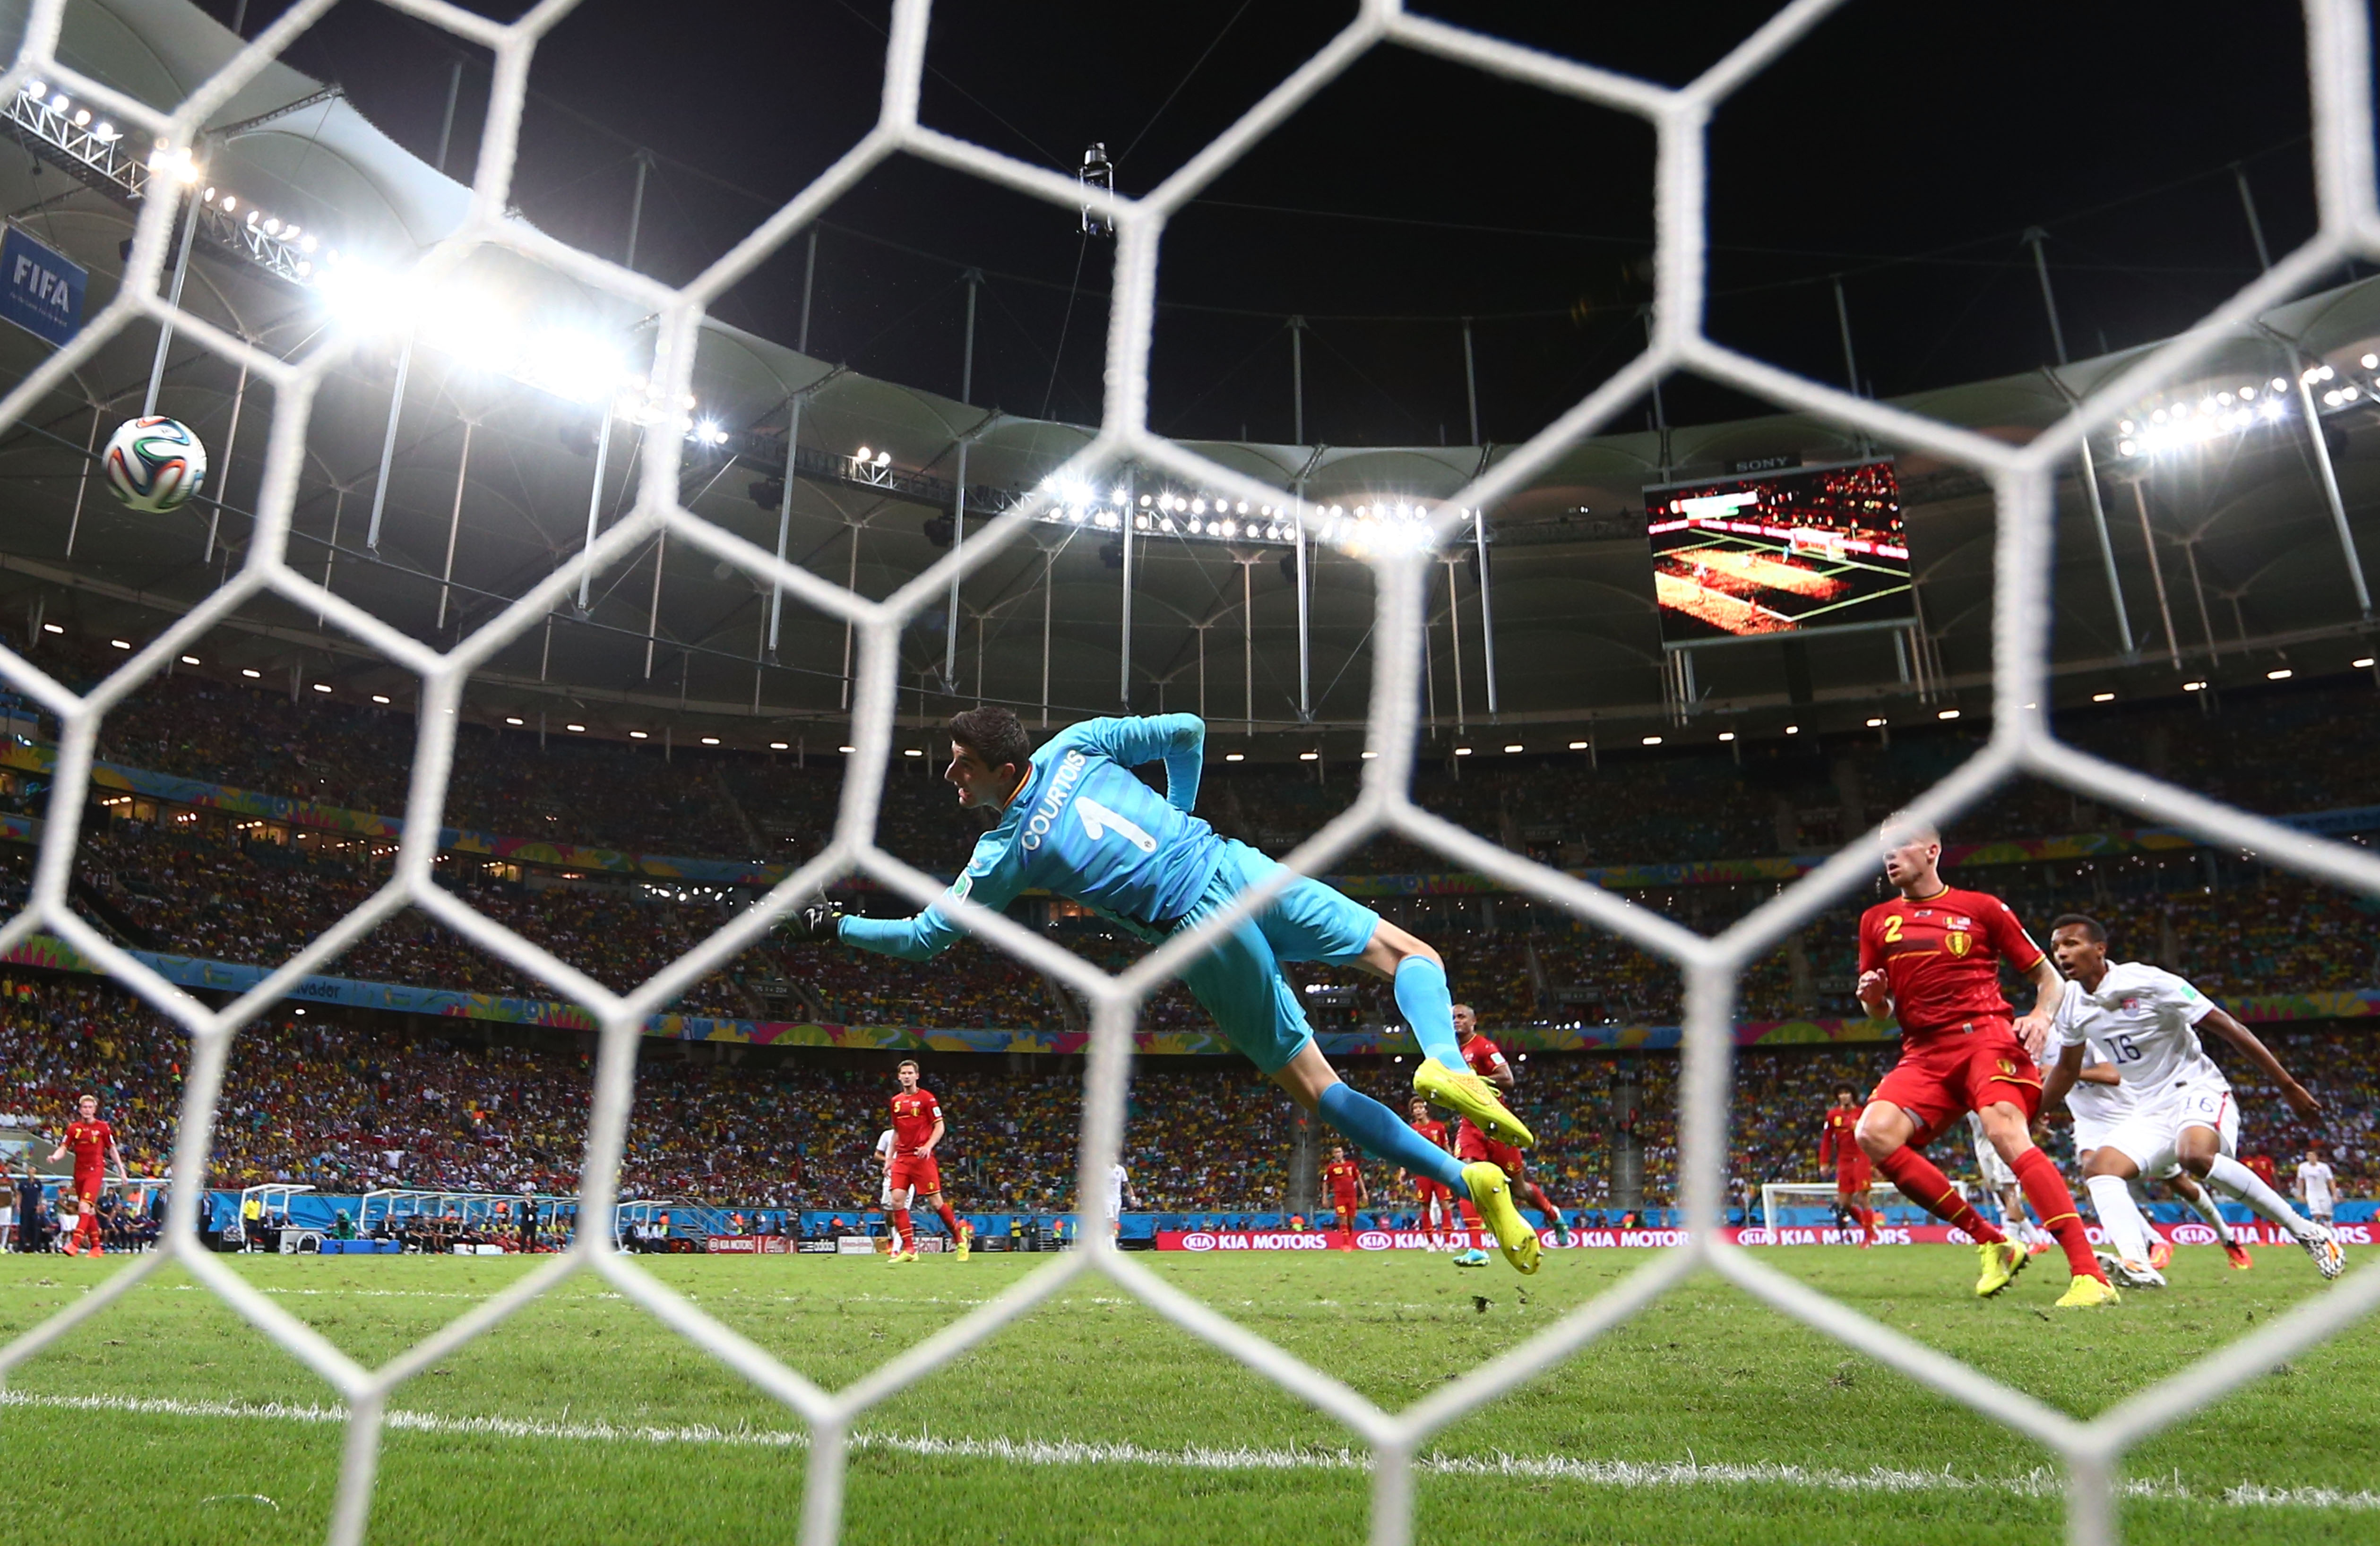 SALVADOR, BRAZIL - JULY 01:  Julian Green of the United States scores his team's first goal past Thibaut Courtois of Belgium in extra time during the 2014 FIFA World Cup Brazil Round of 16 match between Belgium and the United States at Arena Fonte Nova on July 1, 2014 in Salvador, Brazil.  (Photo by Michael Steele/Getty Images)